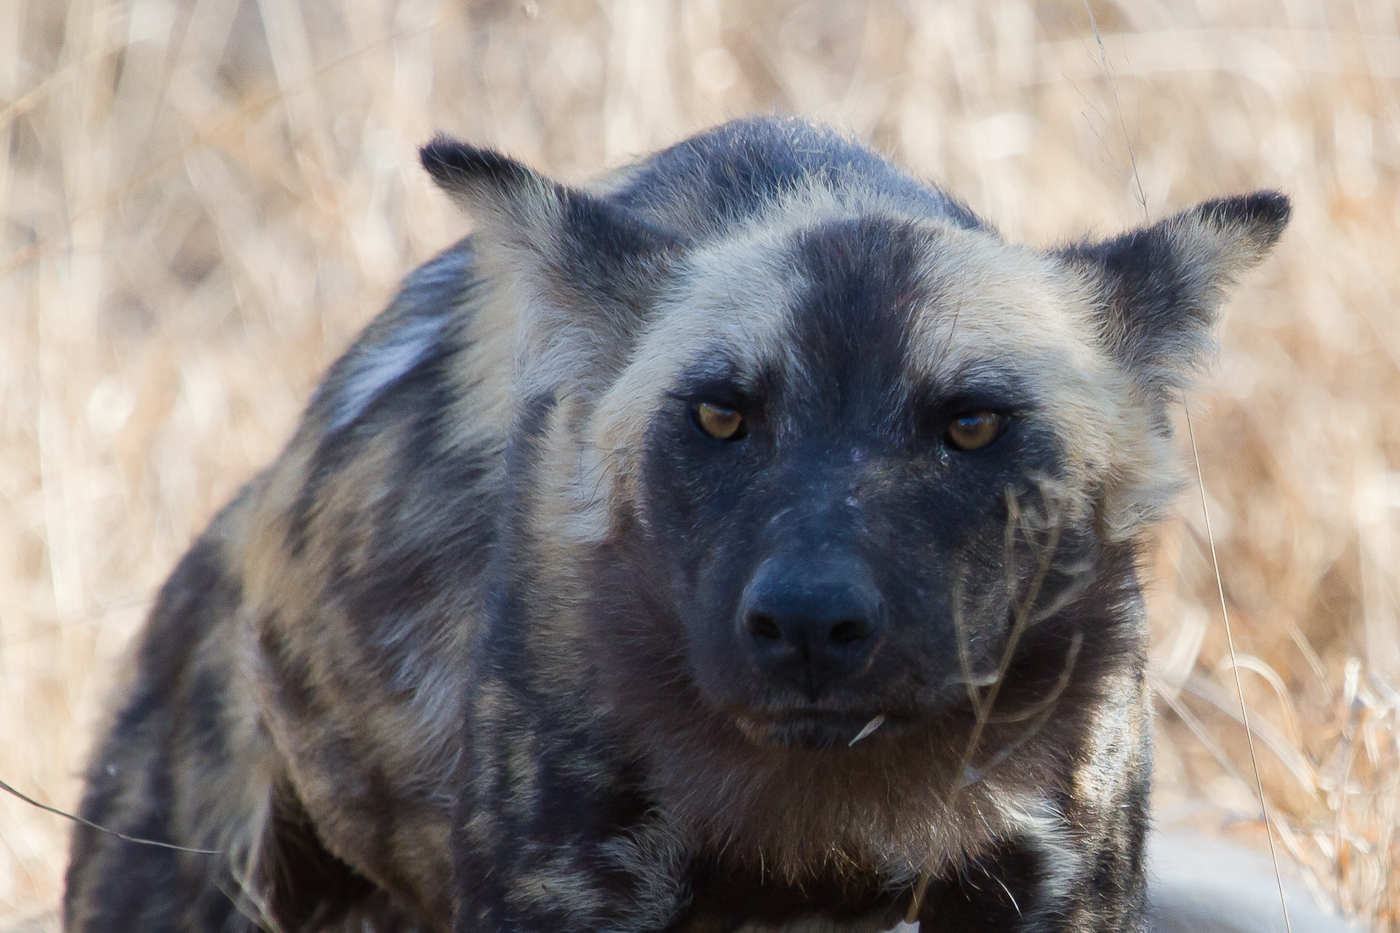 Animals show a variety of emotions. This Wild Dog looks menacing but is actually just arching its back after a nap.